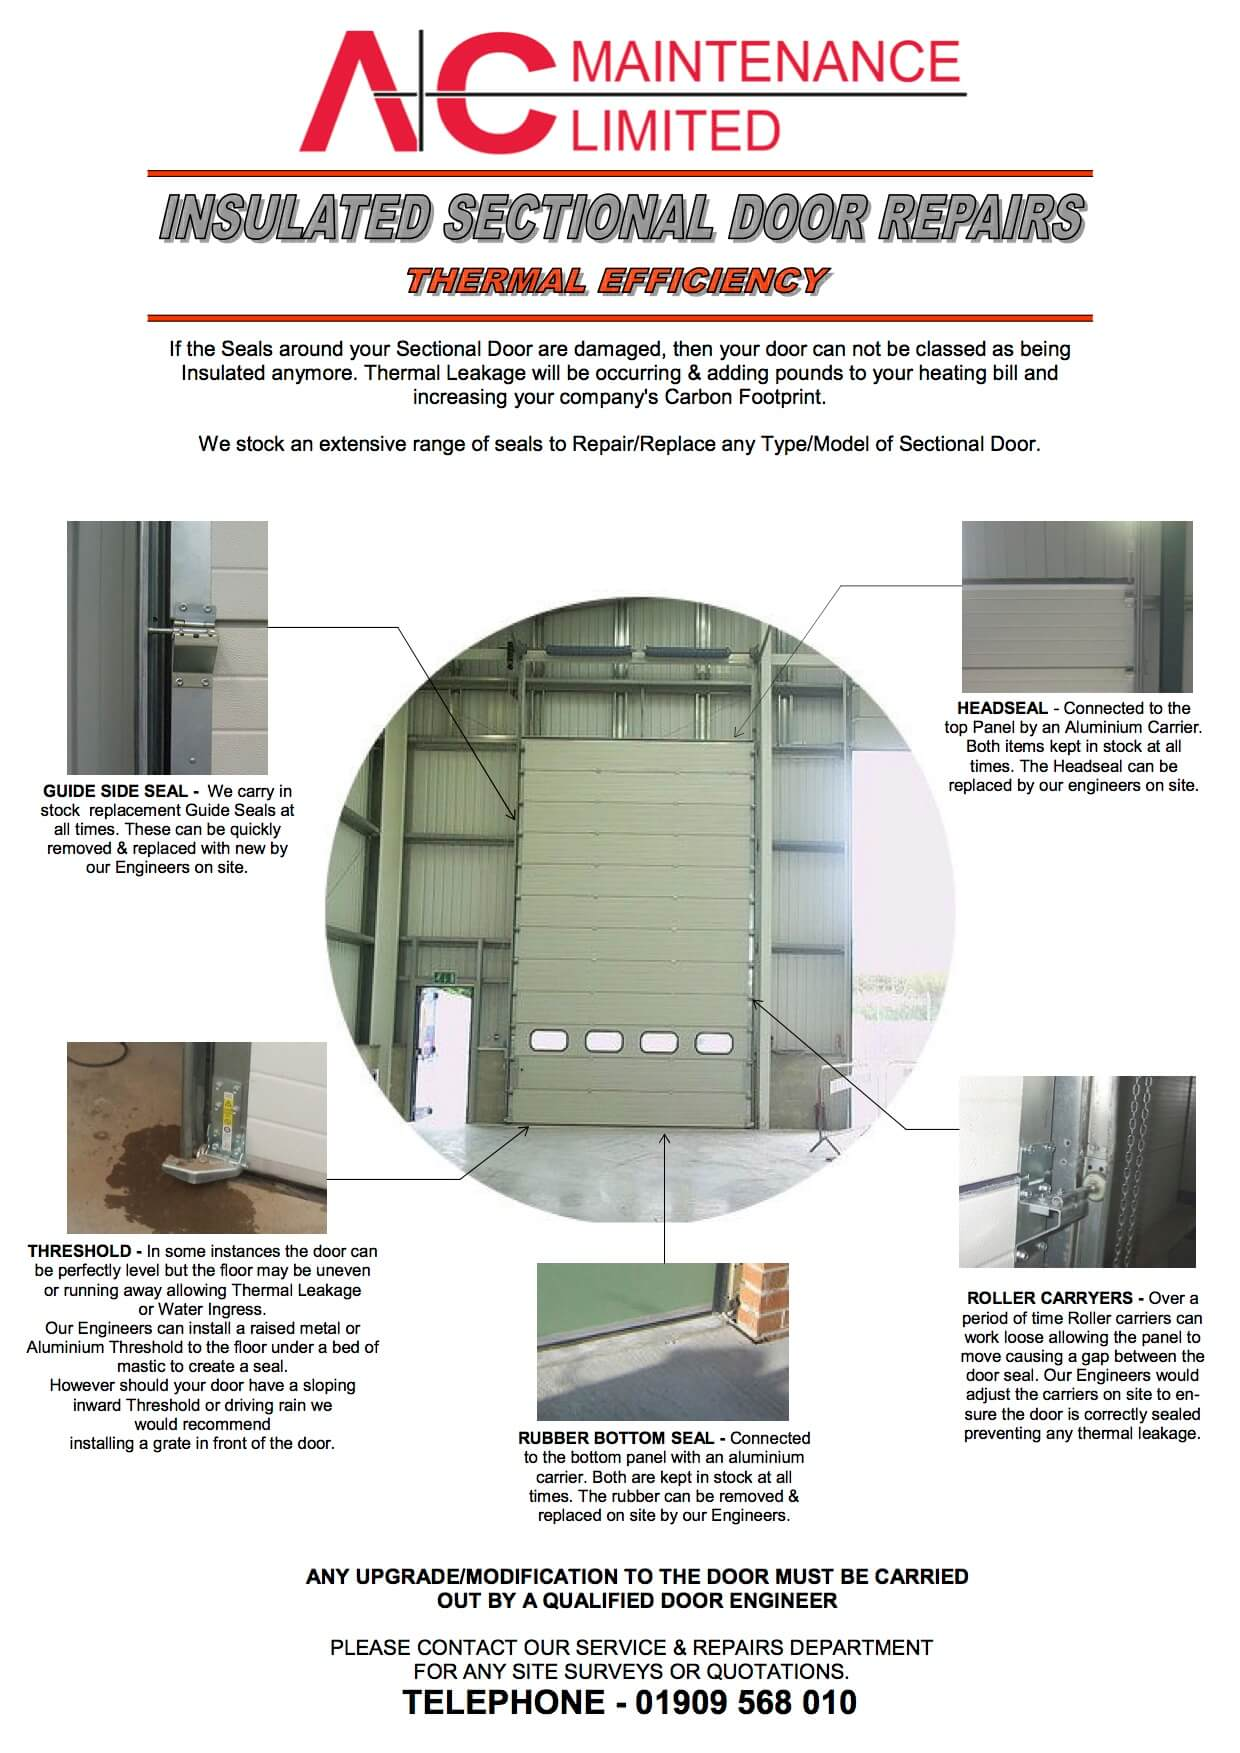 http://www.aandcmaintenance.co.uk/wp-content/uploads/Sectional-Overhead-Door_Repairs-Upgrades.jpg